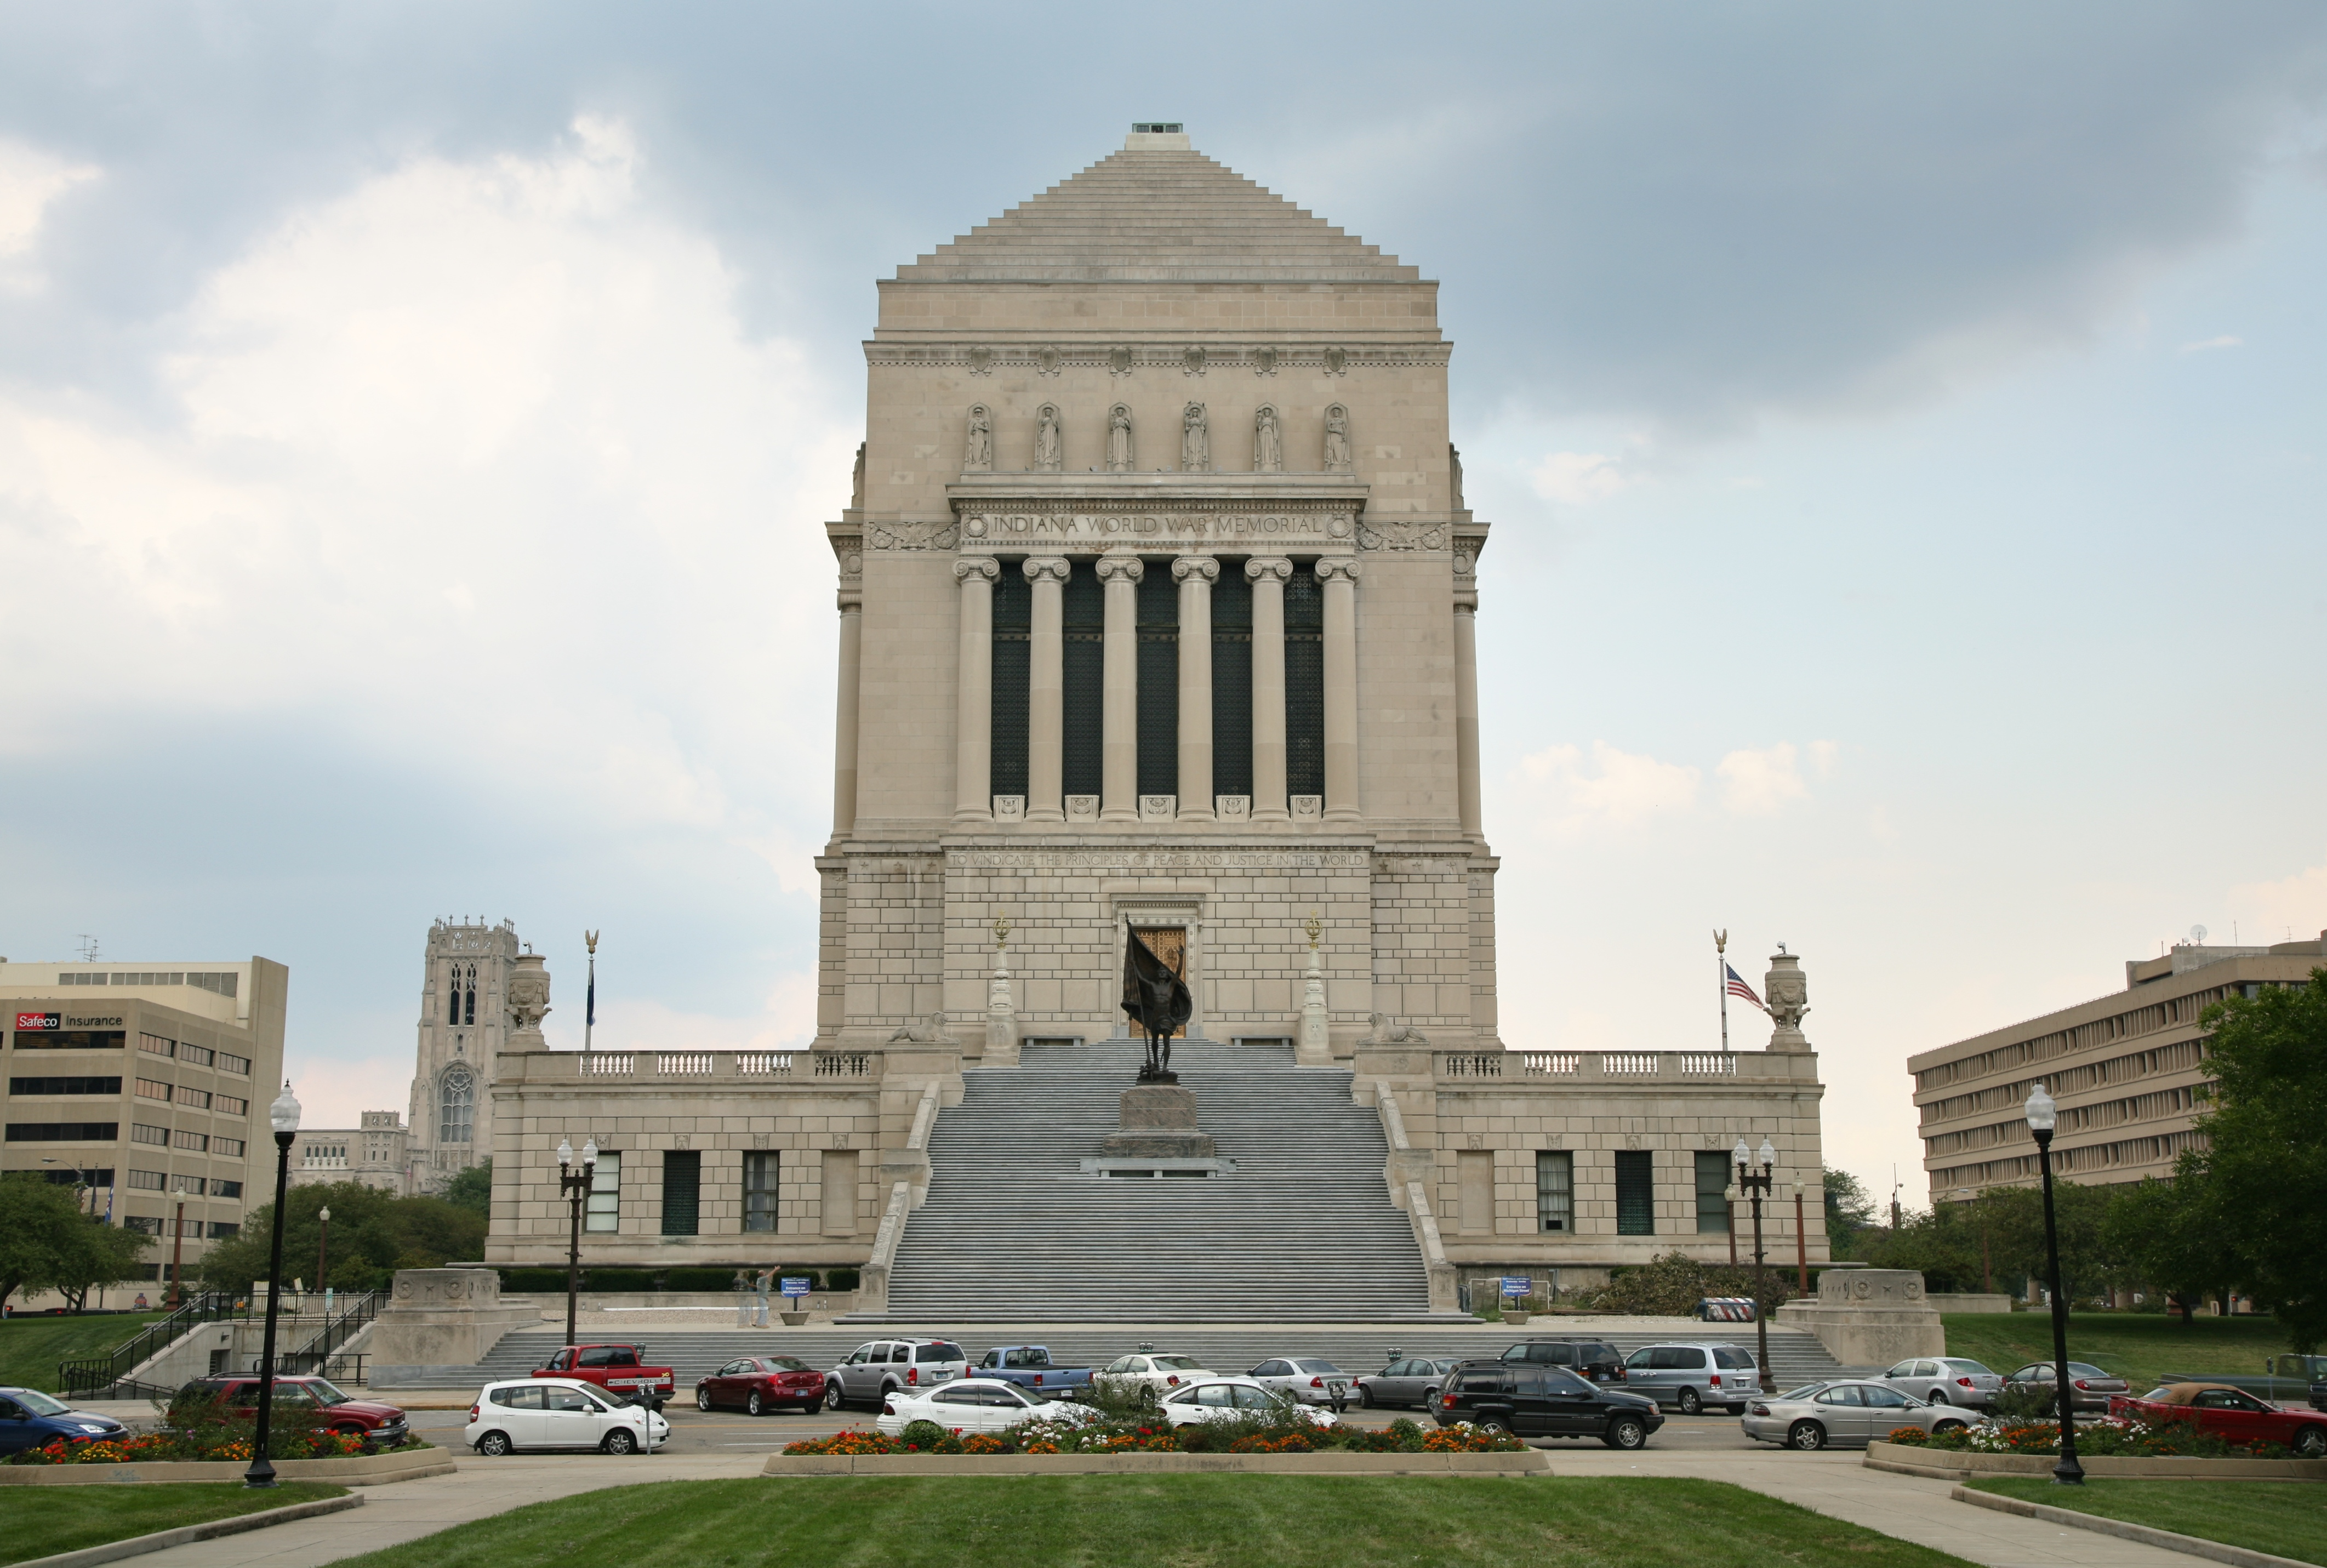 Indiana World War Memorial exterior